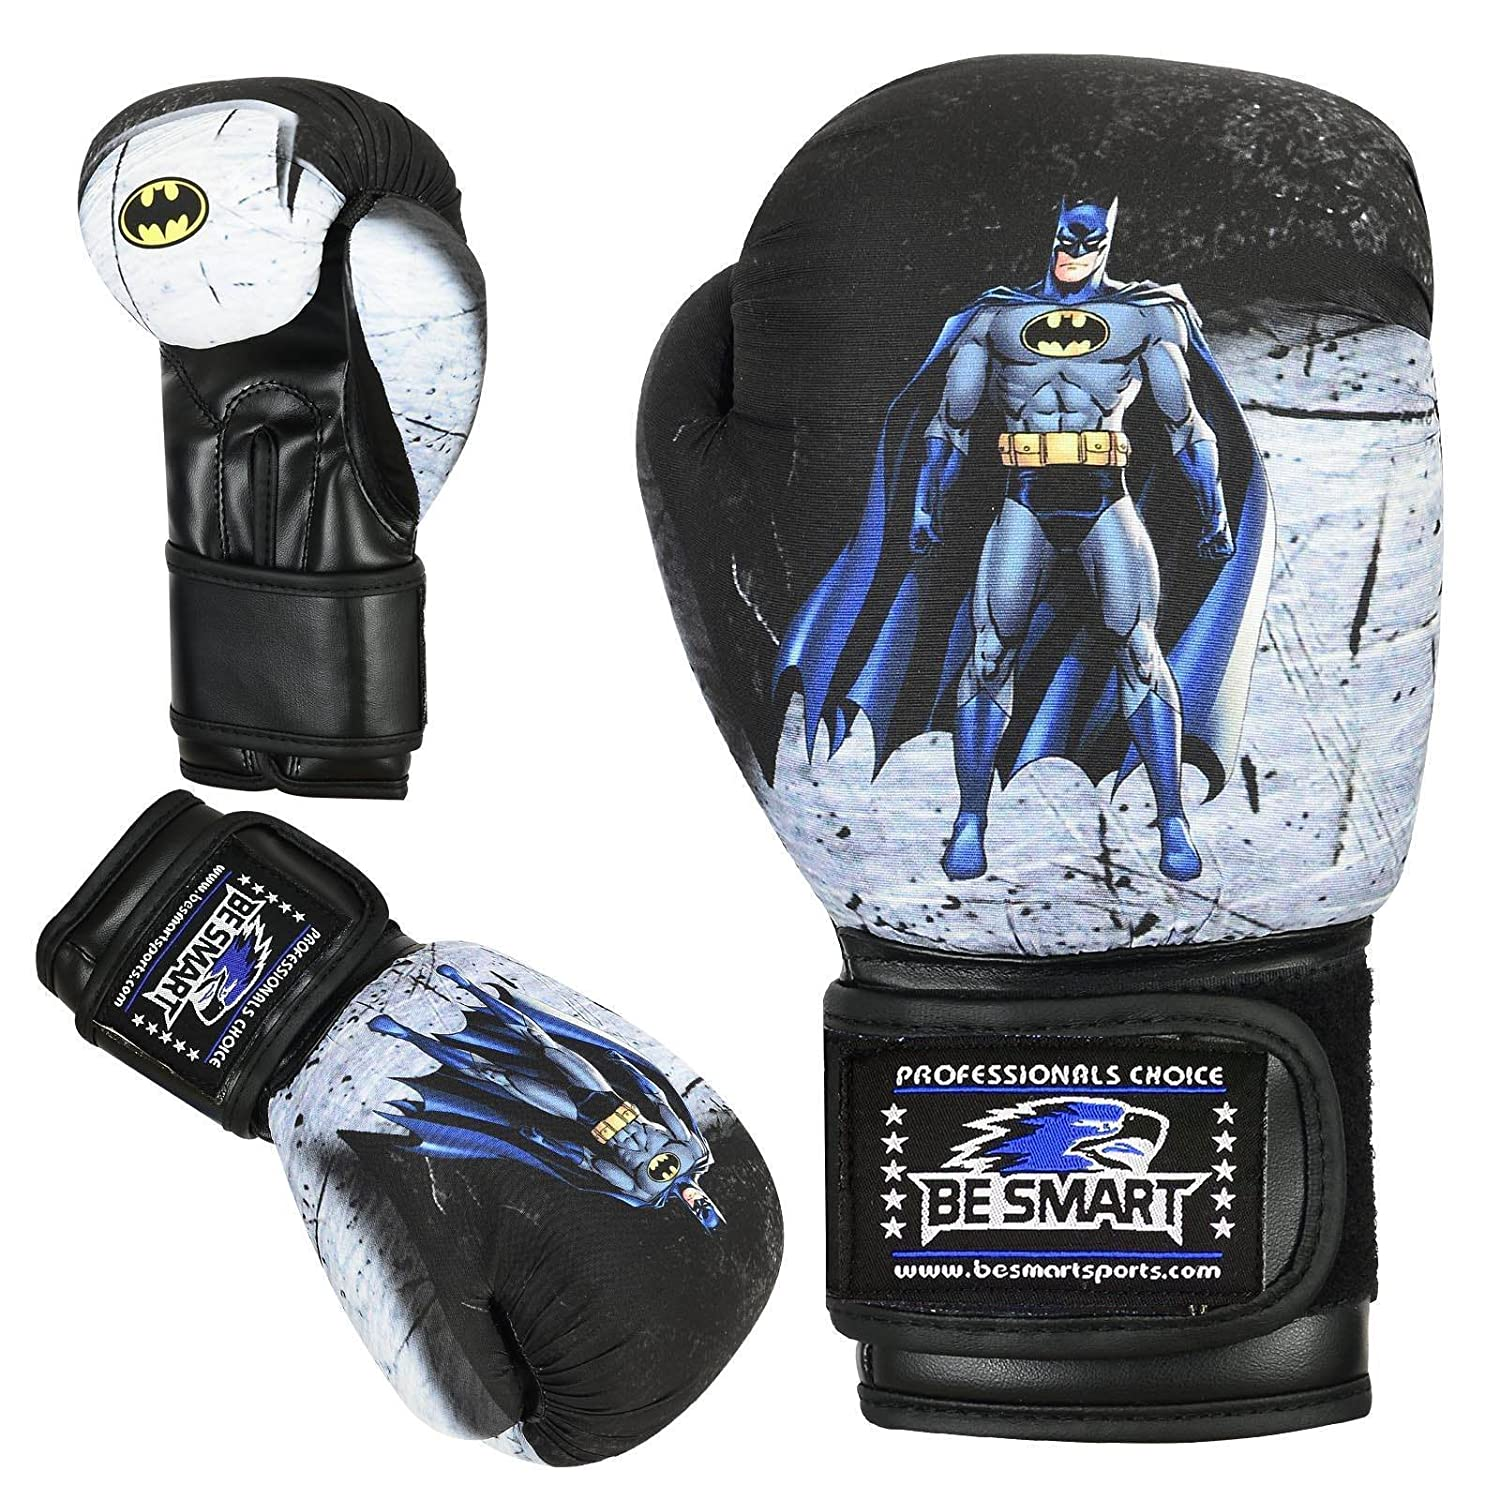 6oz Punch Bag Children MMA Youth Authentic Advance Gel Gloves Used by Top MMA Clubs BeSmart Spider-man Kids Boxing Gloves Junior Mitts 4oz